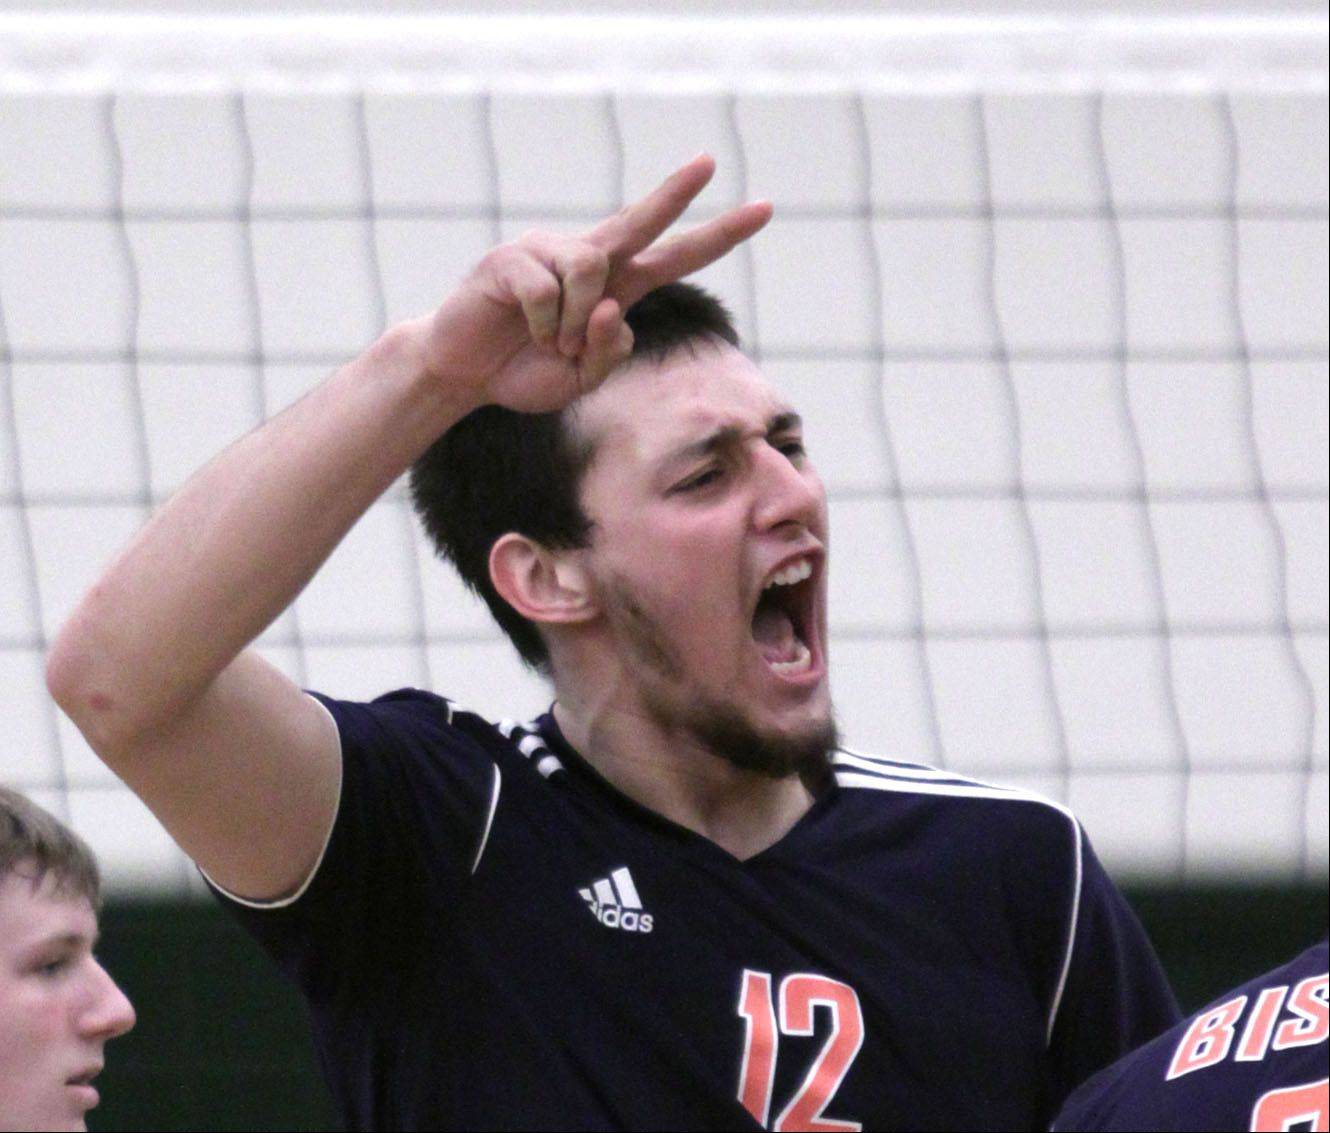 Buffalo Grove's Jose Aguirre offers encouragement to teammates during Tuesday's volleyball game against Elk Grove.